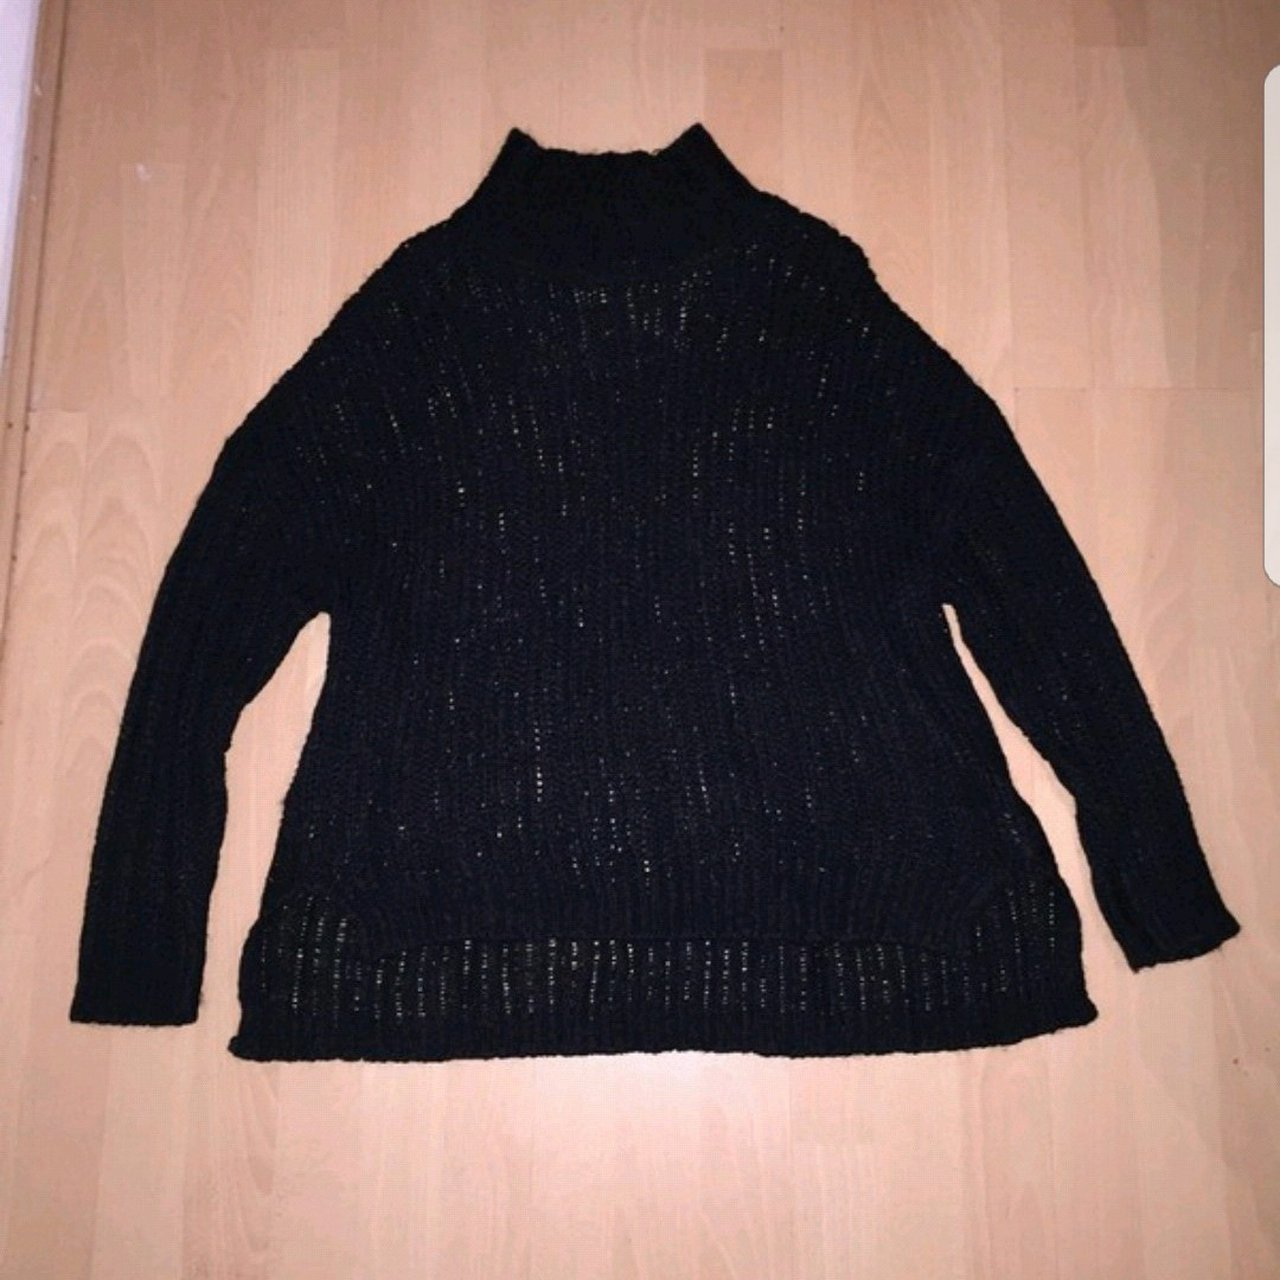 db0e8f0e7b92 Product  Jumper • Brand  H M • Size  M - Medium - Best fit - Depop